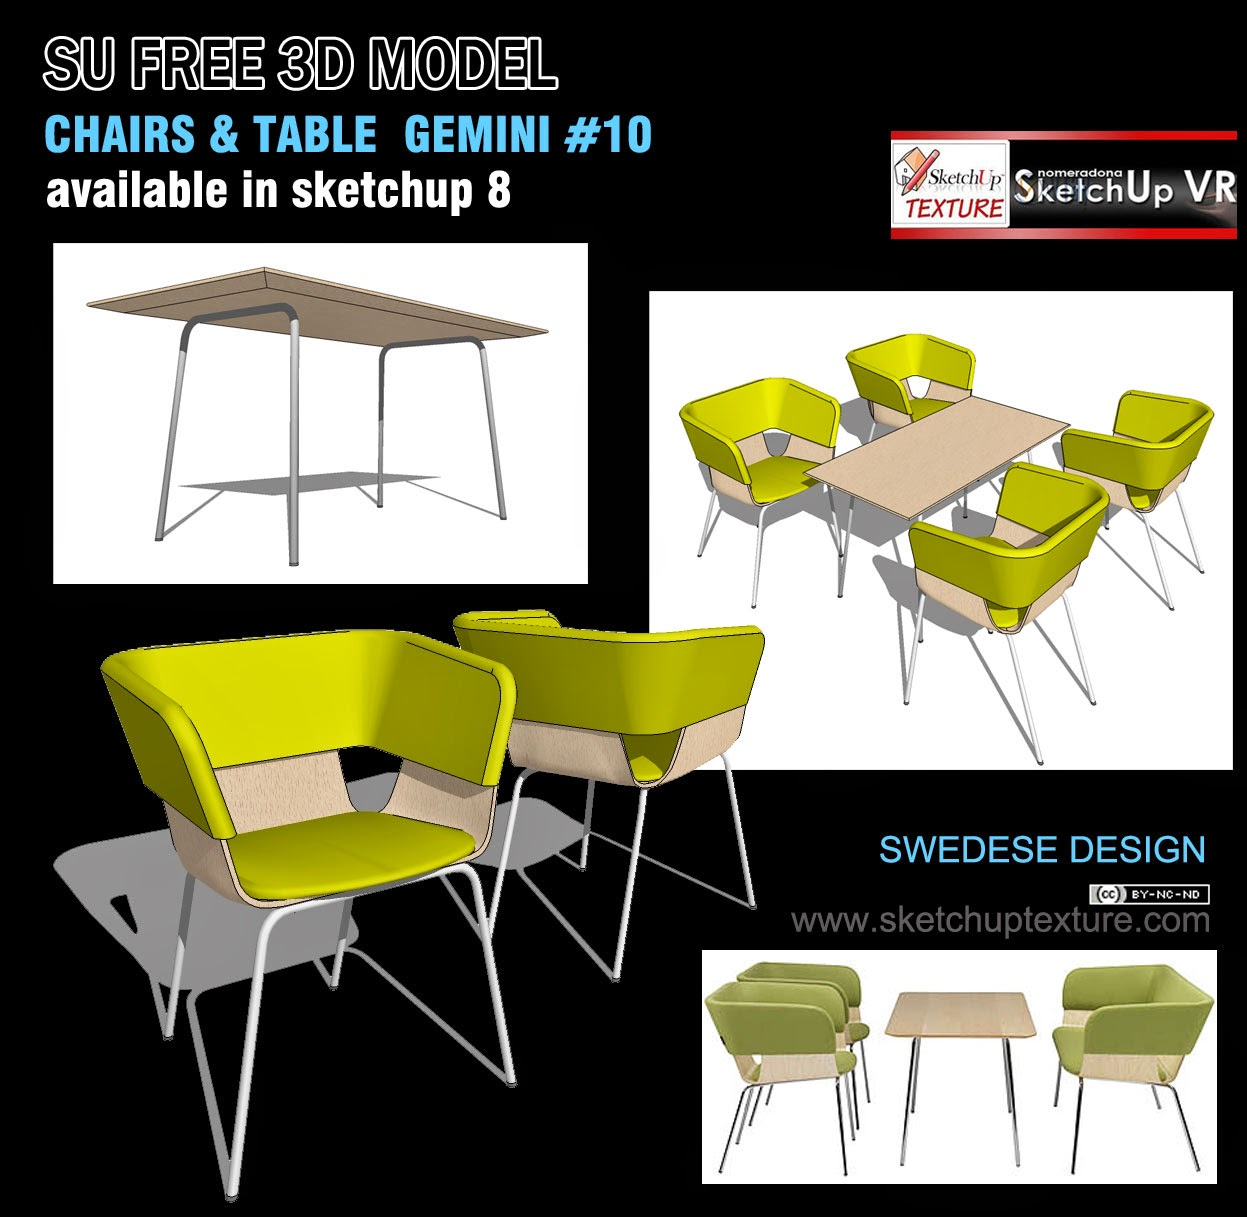 Free sketchup 3d model chair table design 10 tutorial for Table design sketchup